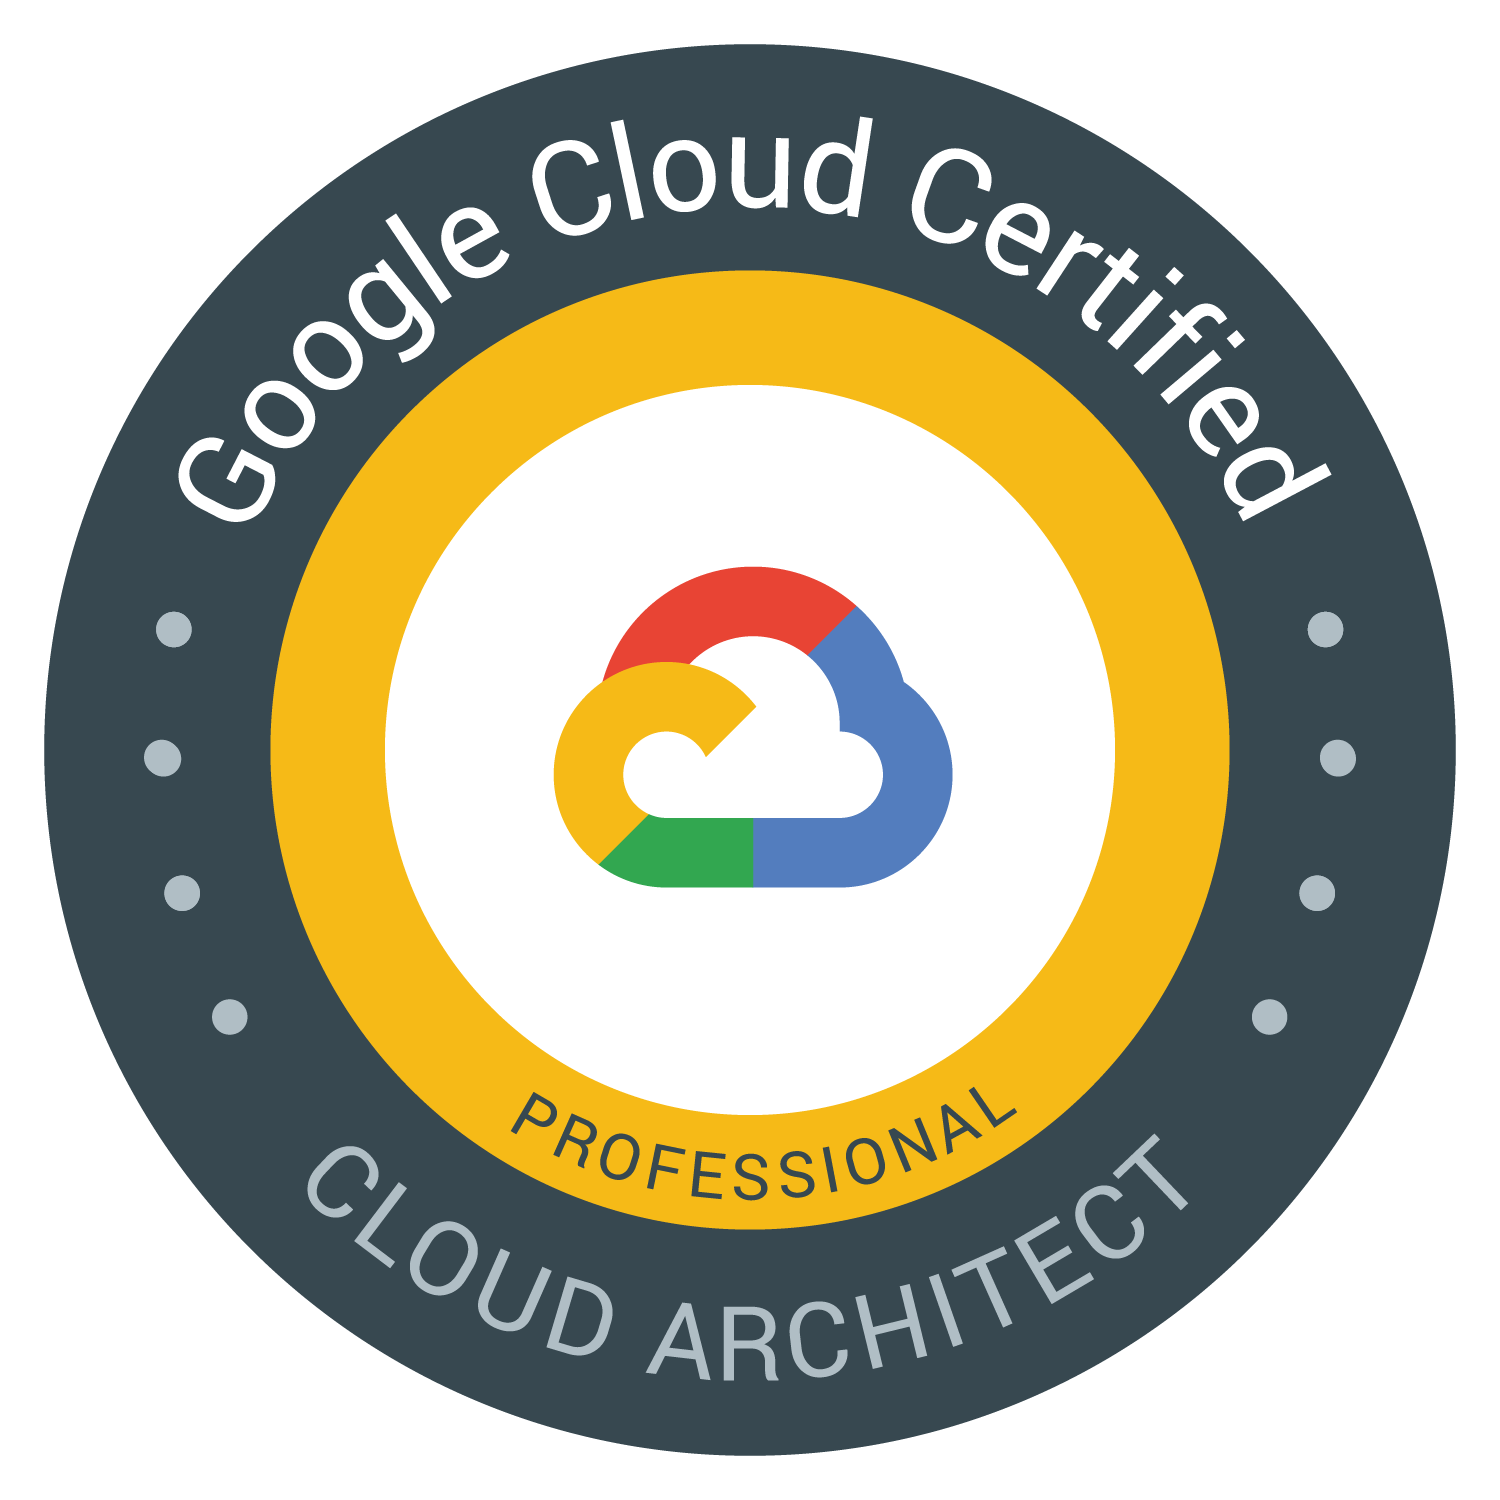 Google cloud certified cloud architect logo